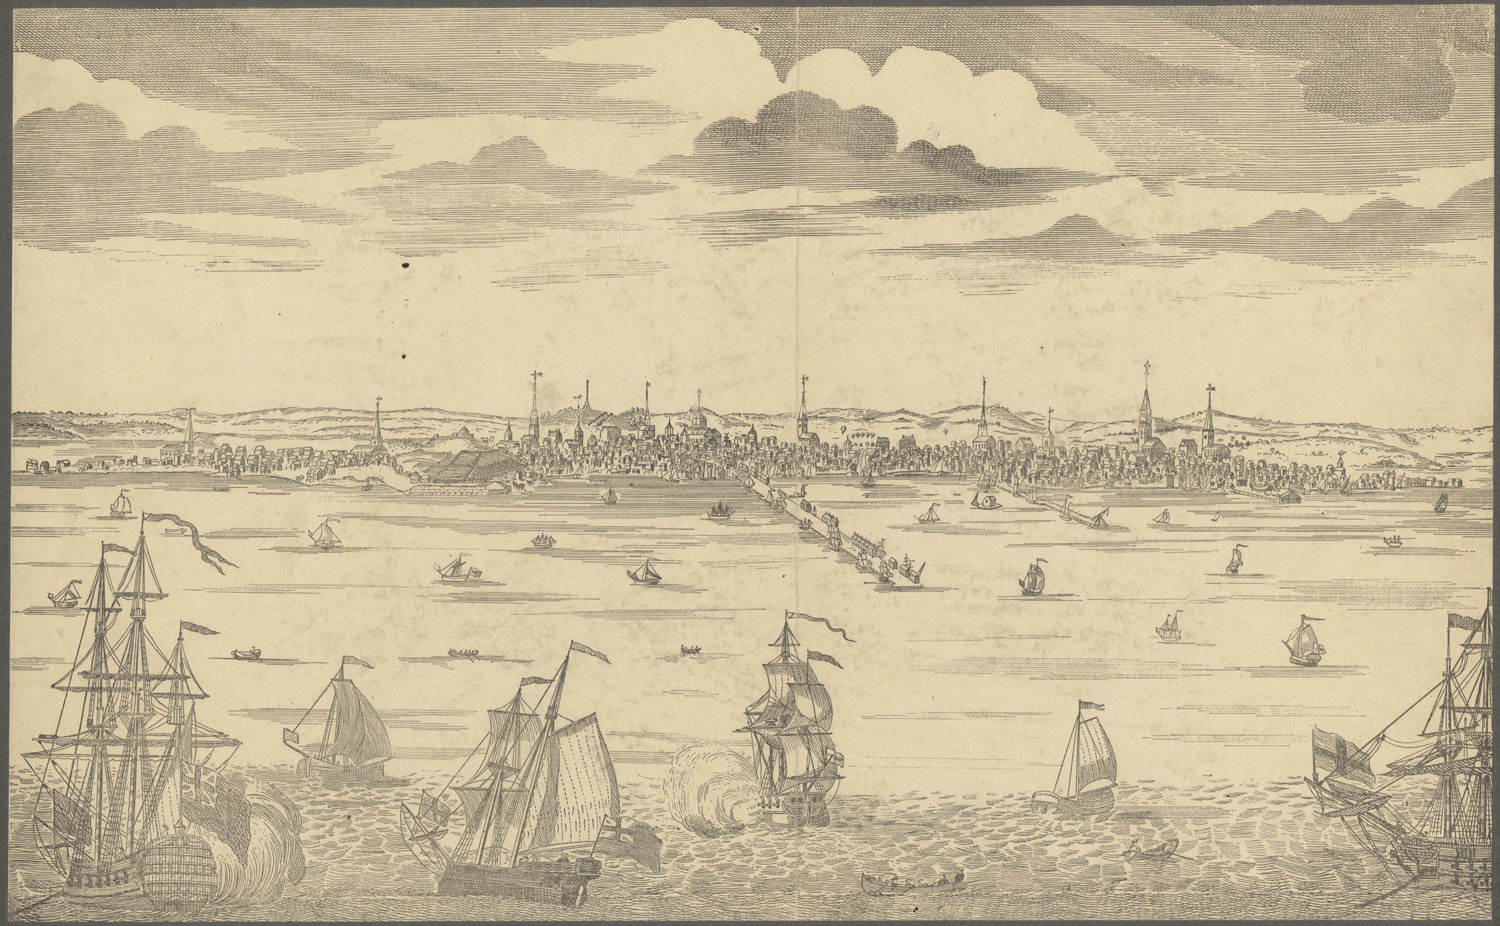 A view of Boston Harbor in 1790.